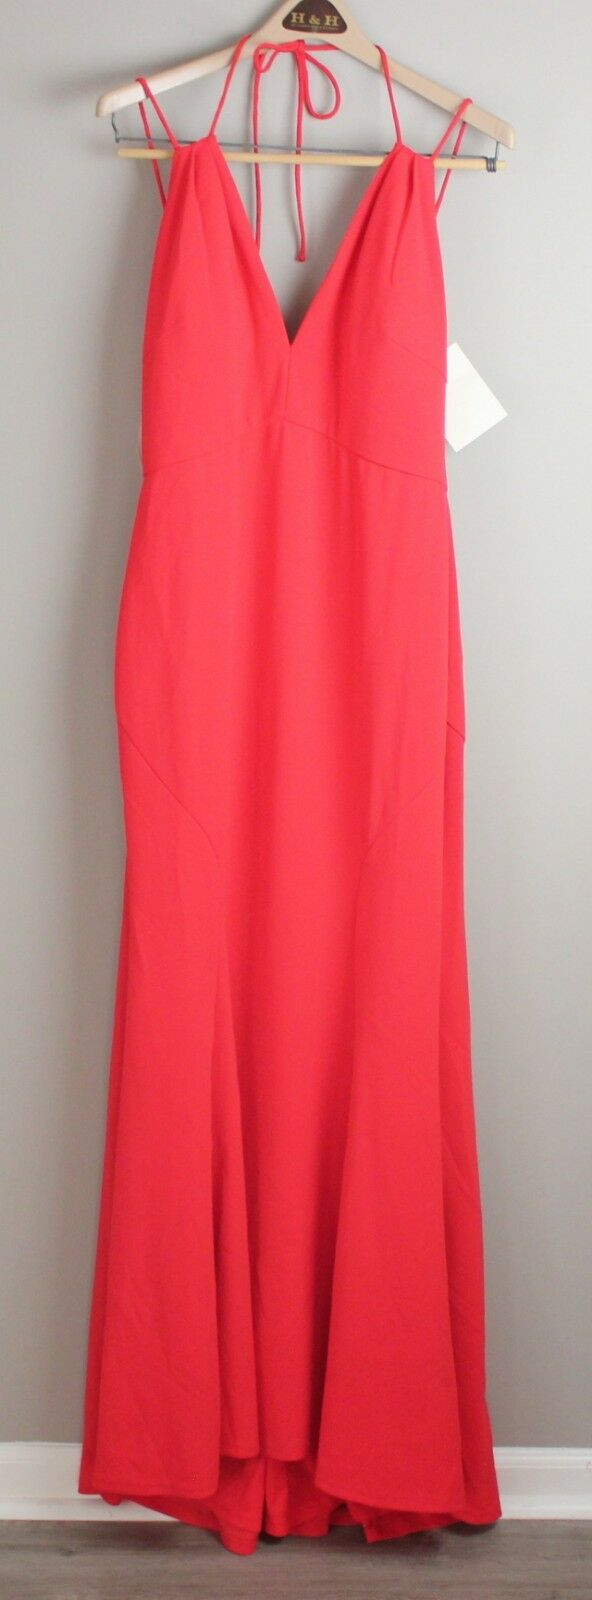 Boston Proper NWT Dramatic rot Plunge Strappy Maxi Formal Gown Größe 12 Fits Big